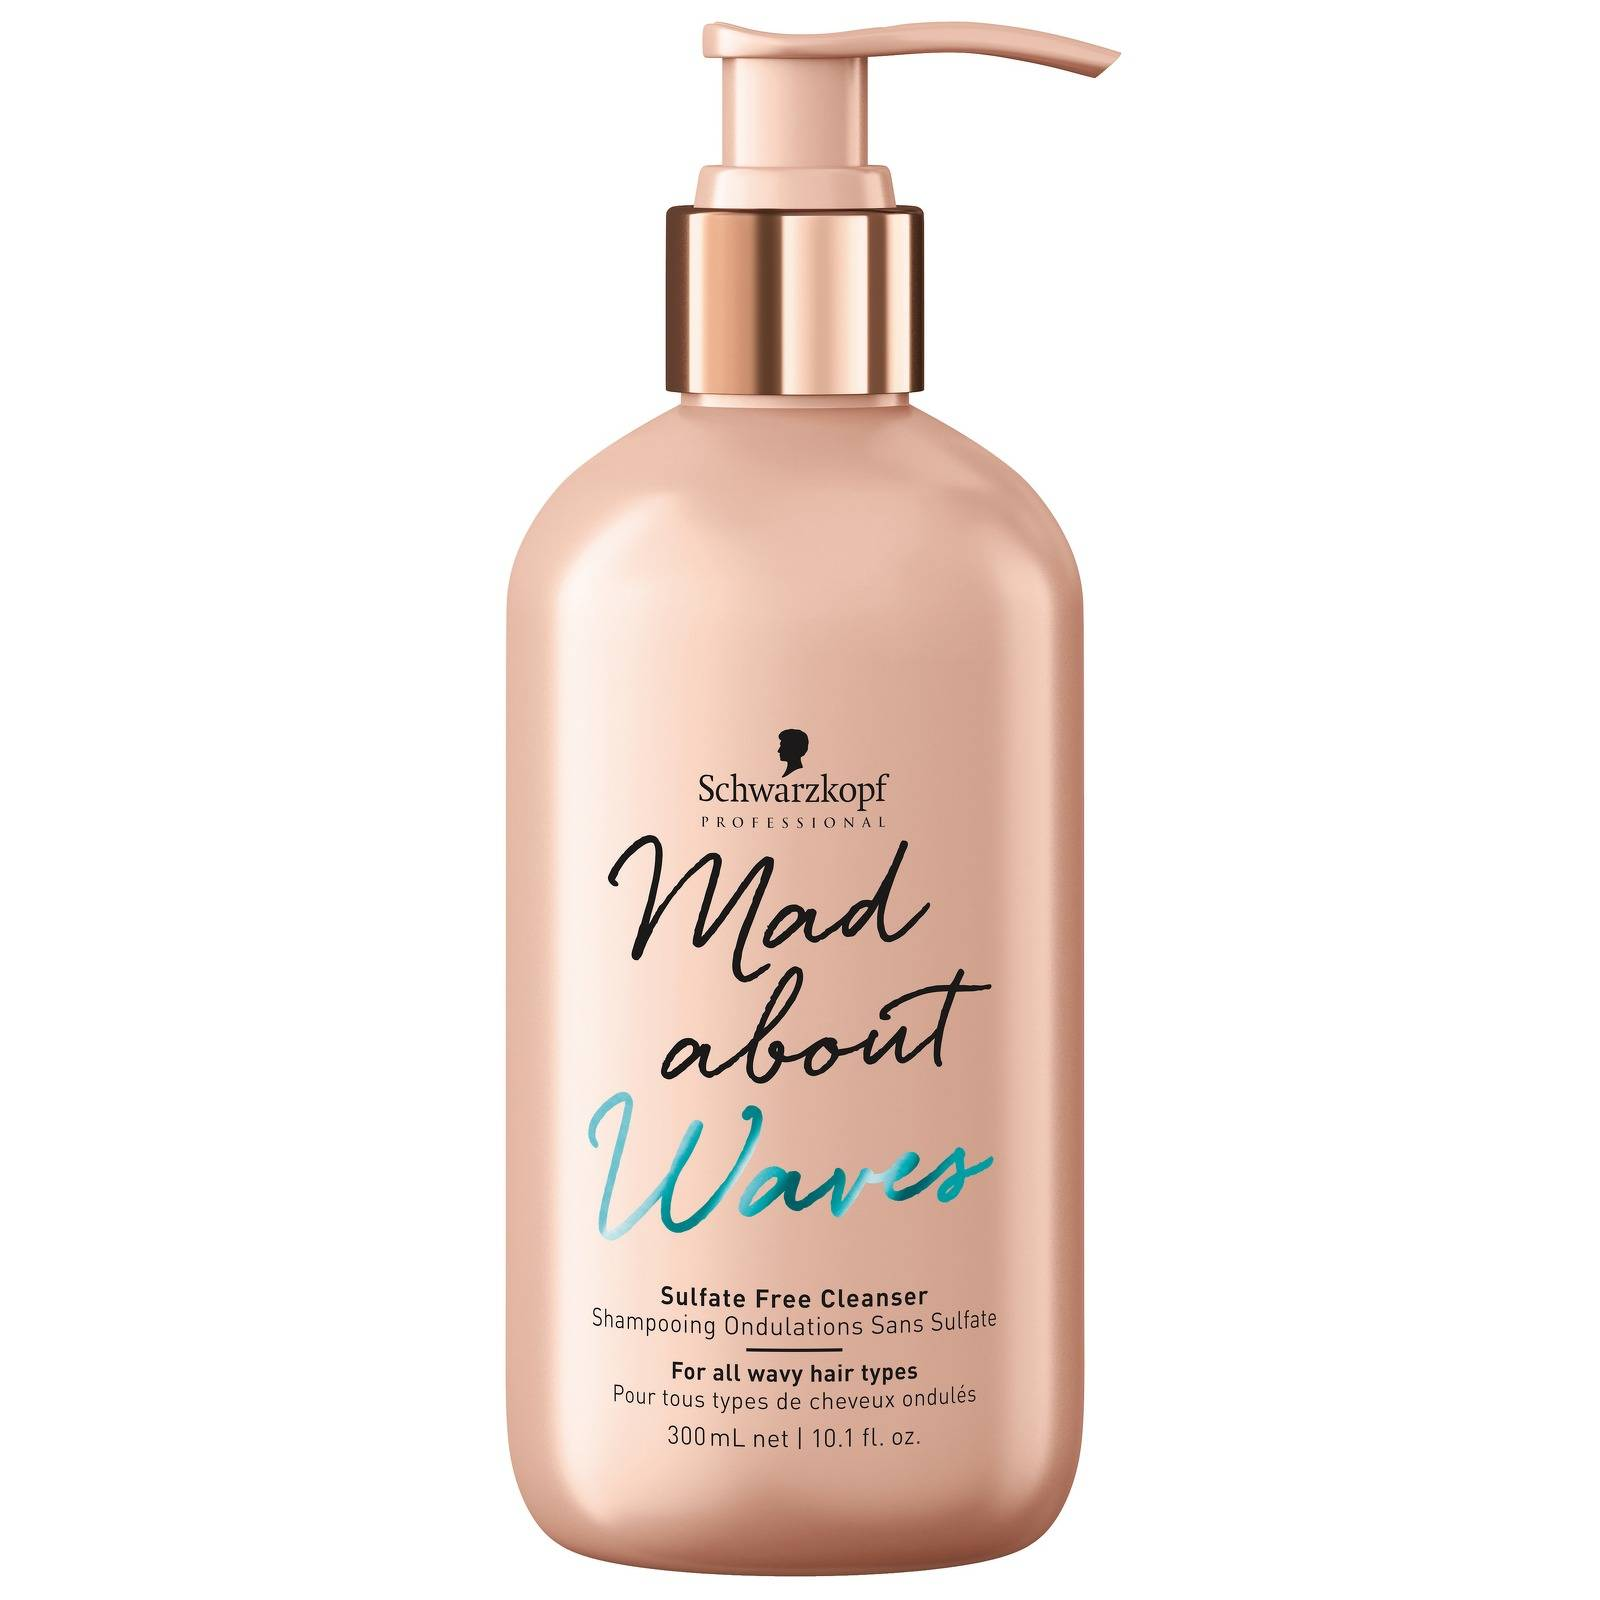 Schwarzkopf - Mad About Waves Sulfate-Free Cleanser 300ml for Women, sulphate-free